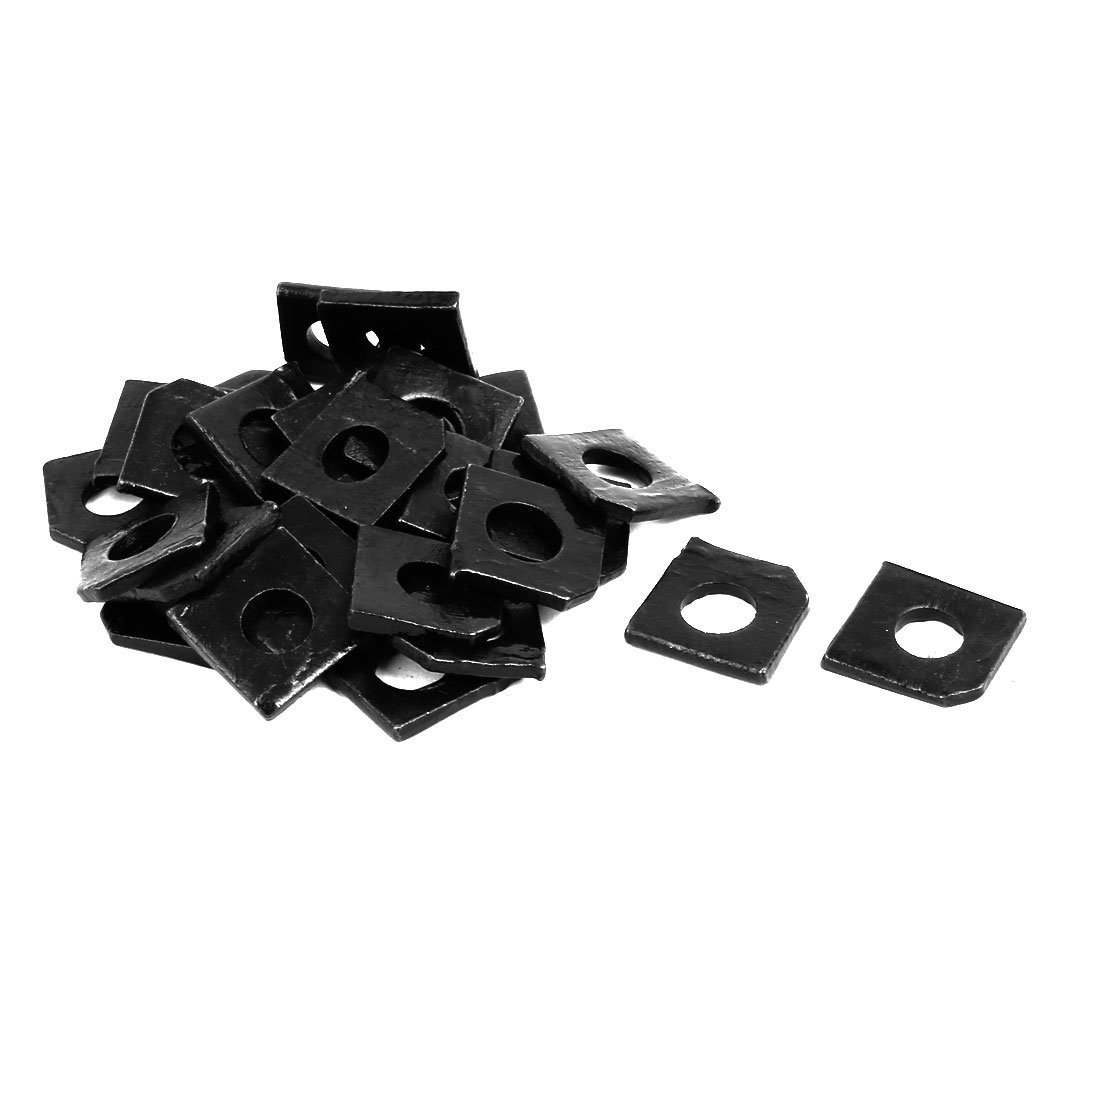 uxcell 6mm Fitting Dia Carbon Steel Slot Section Square Bevel Washer 30pcs